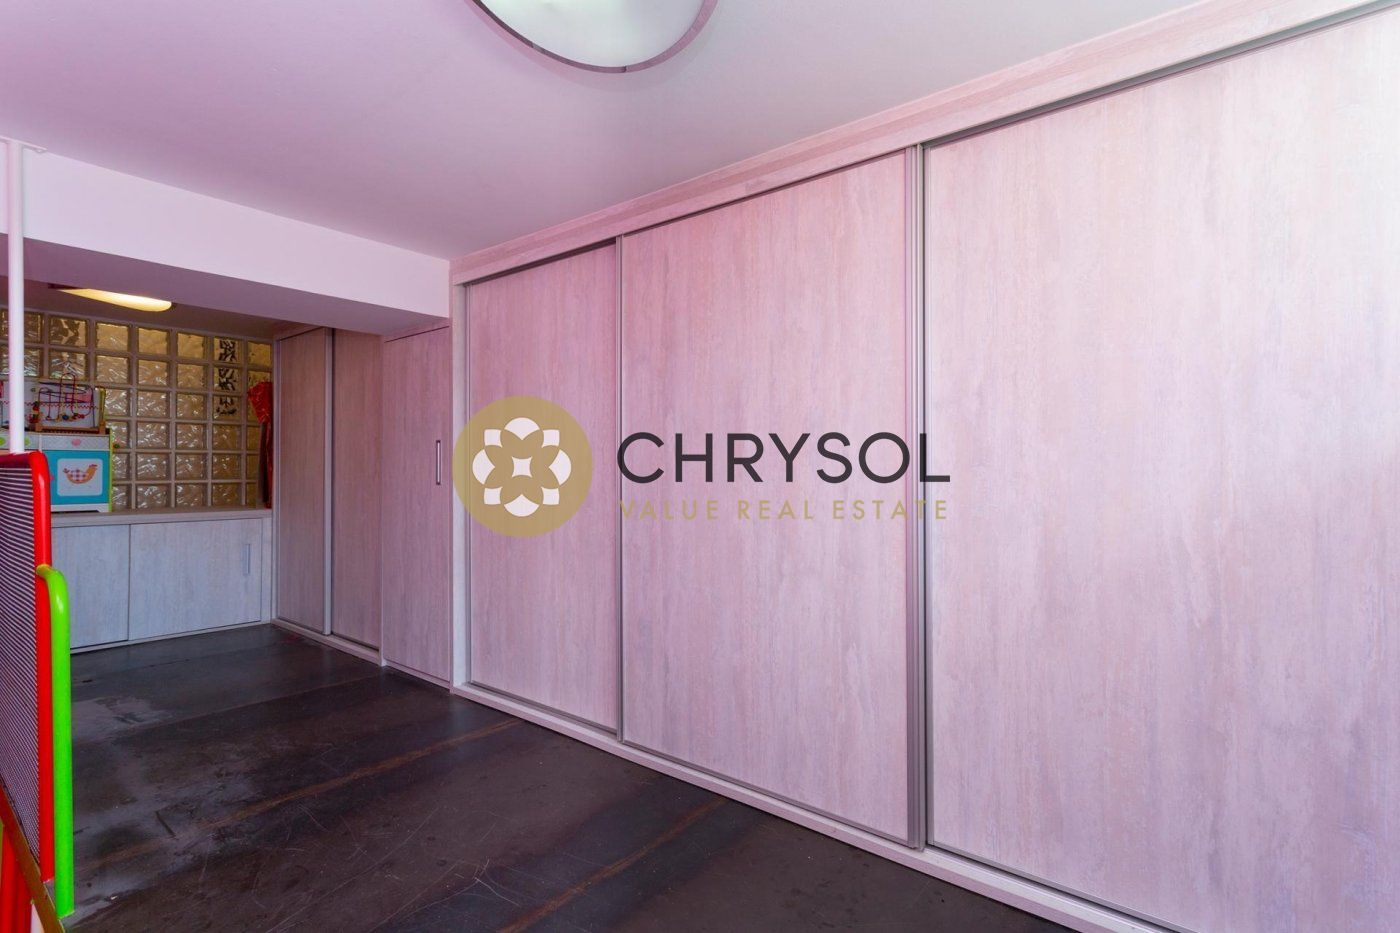 Photogallery - 43 - Chrysol Value